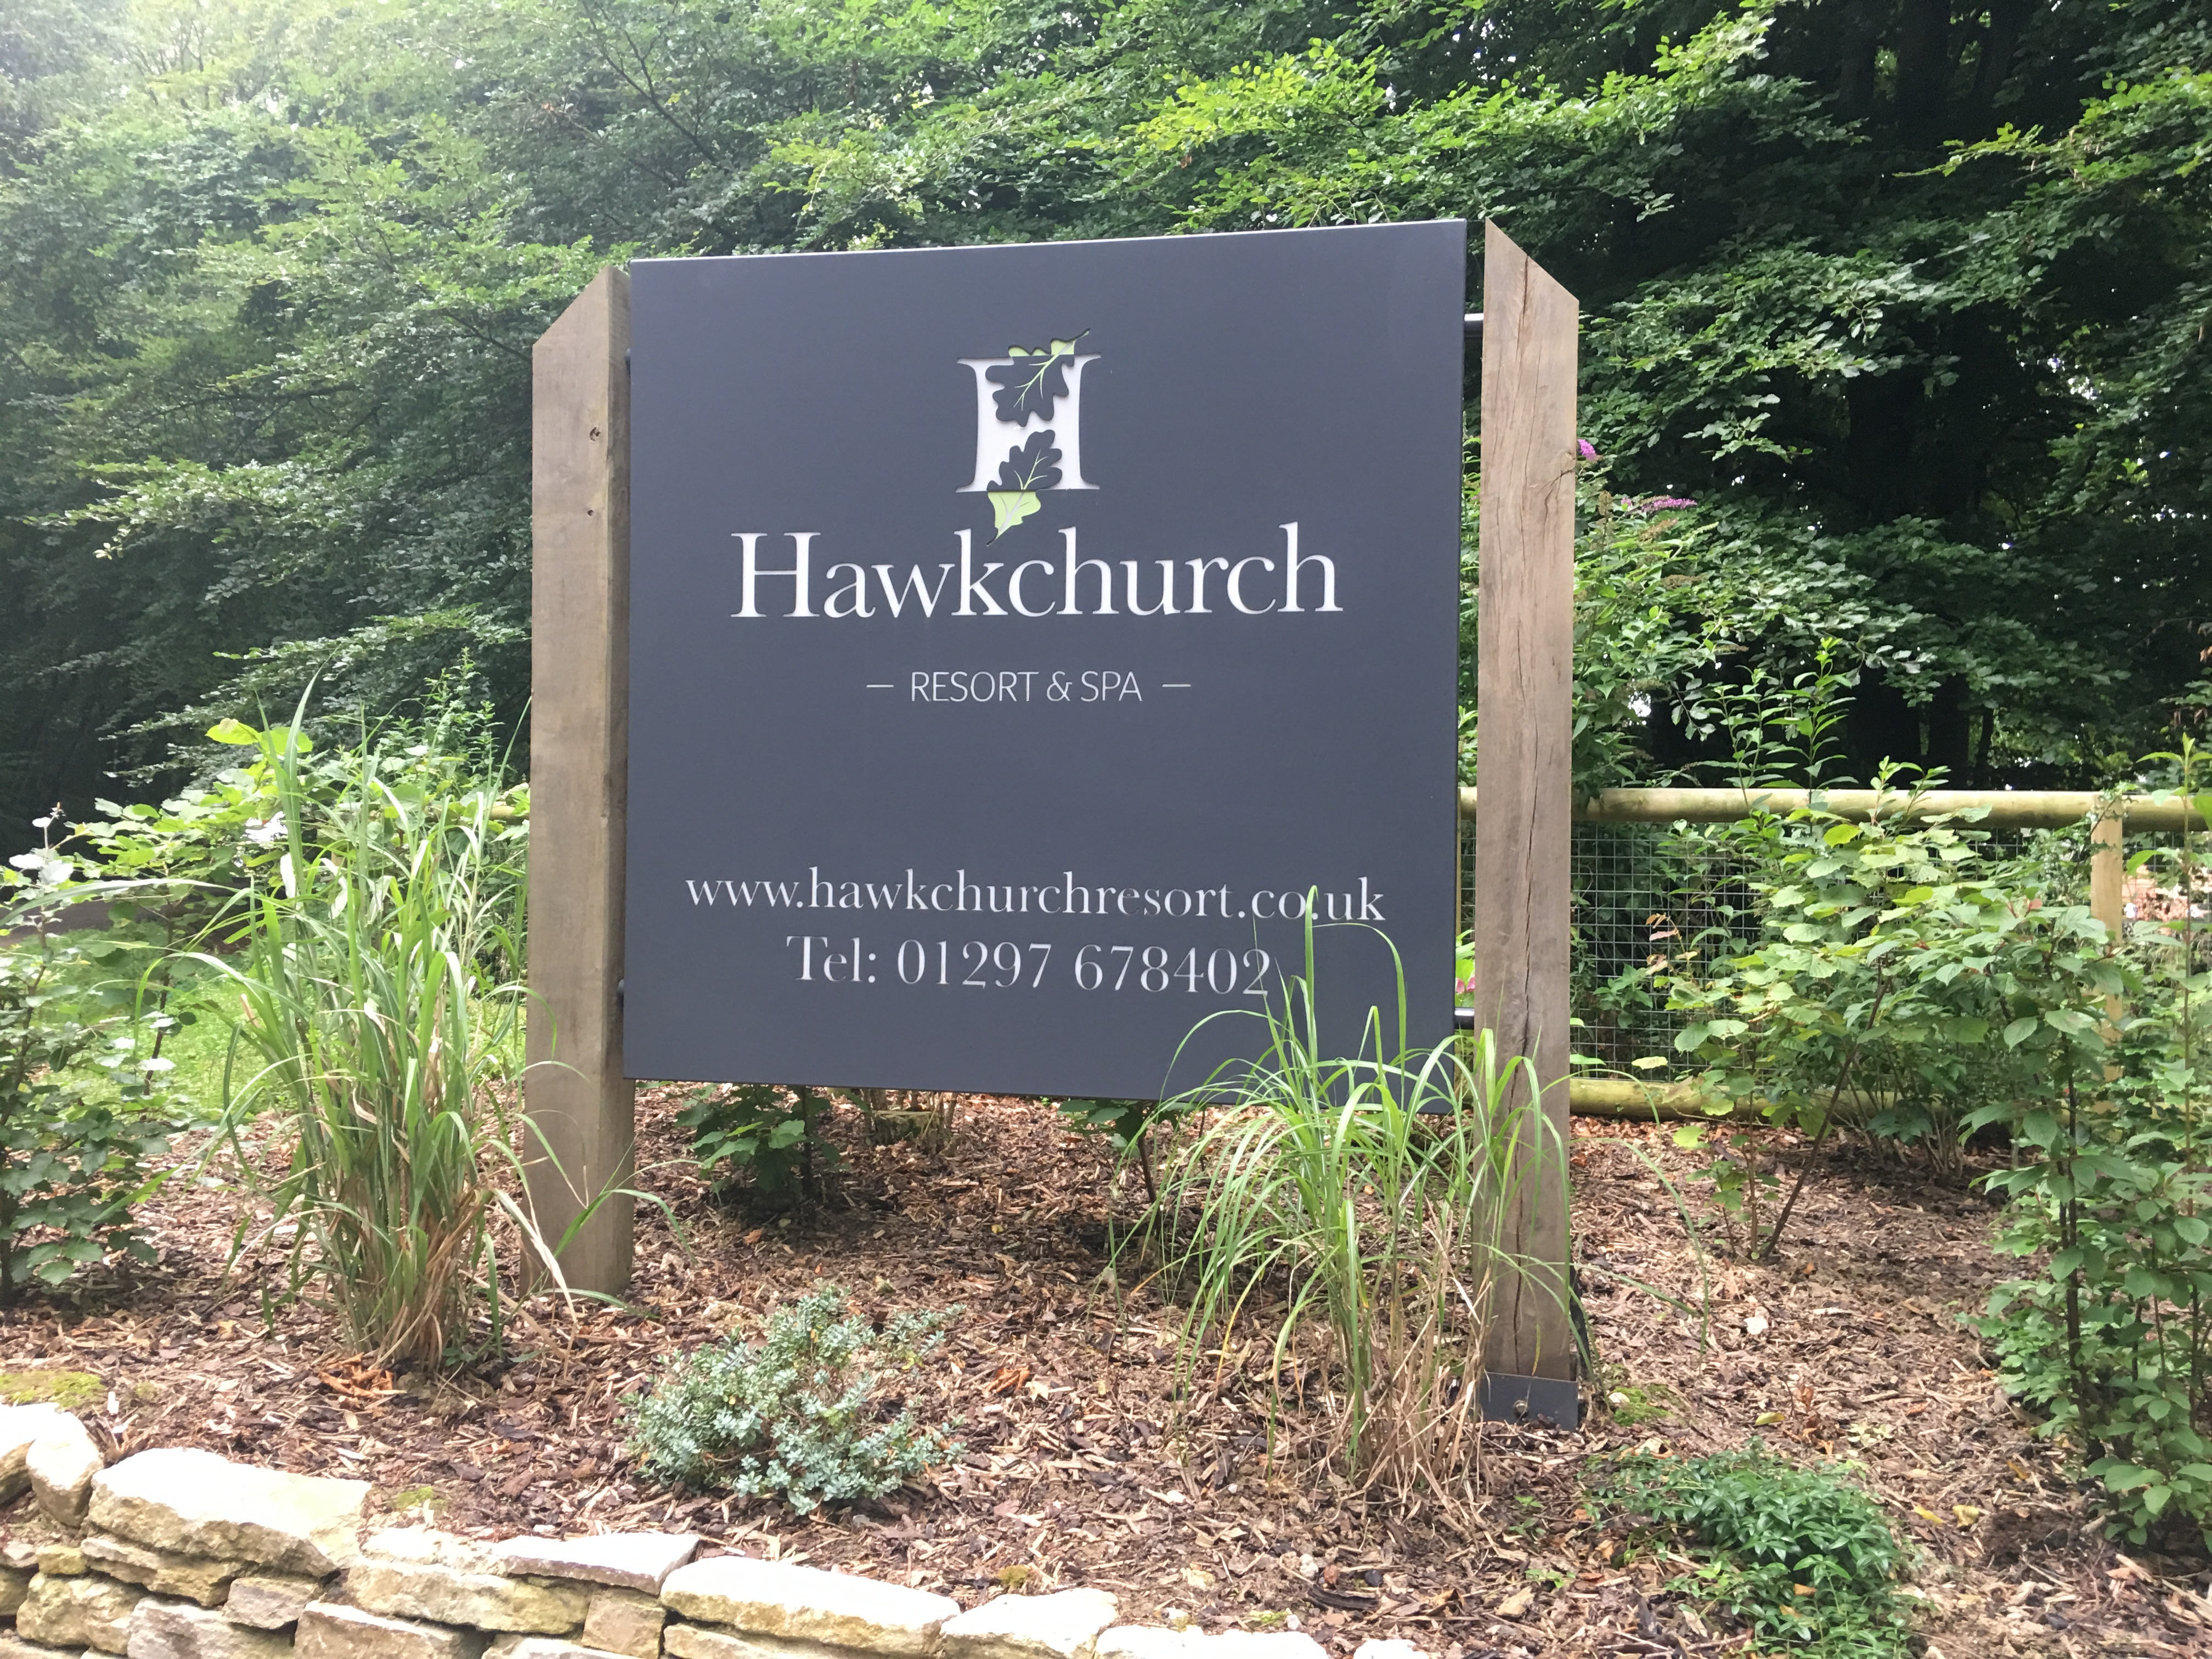 Hawkchurch resort & Spa